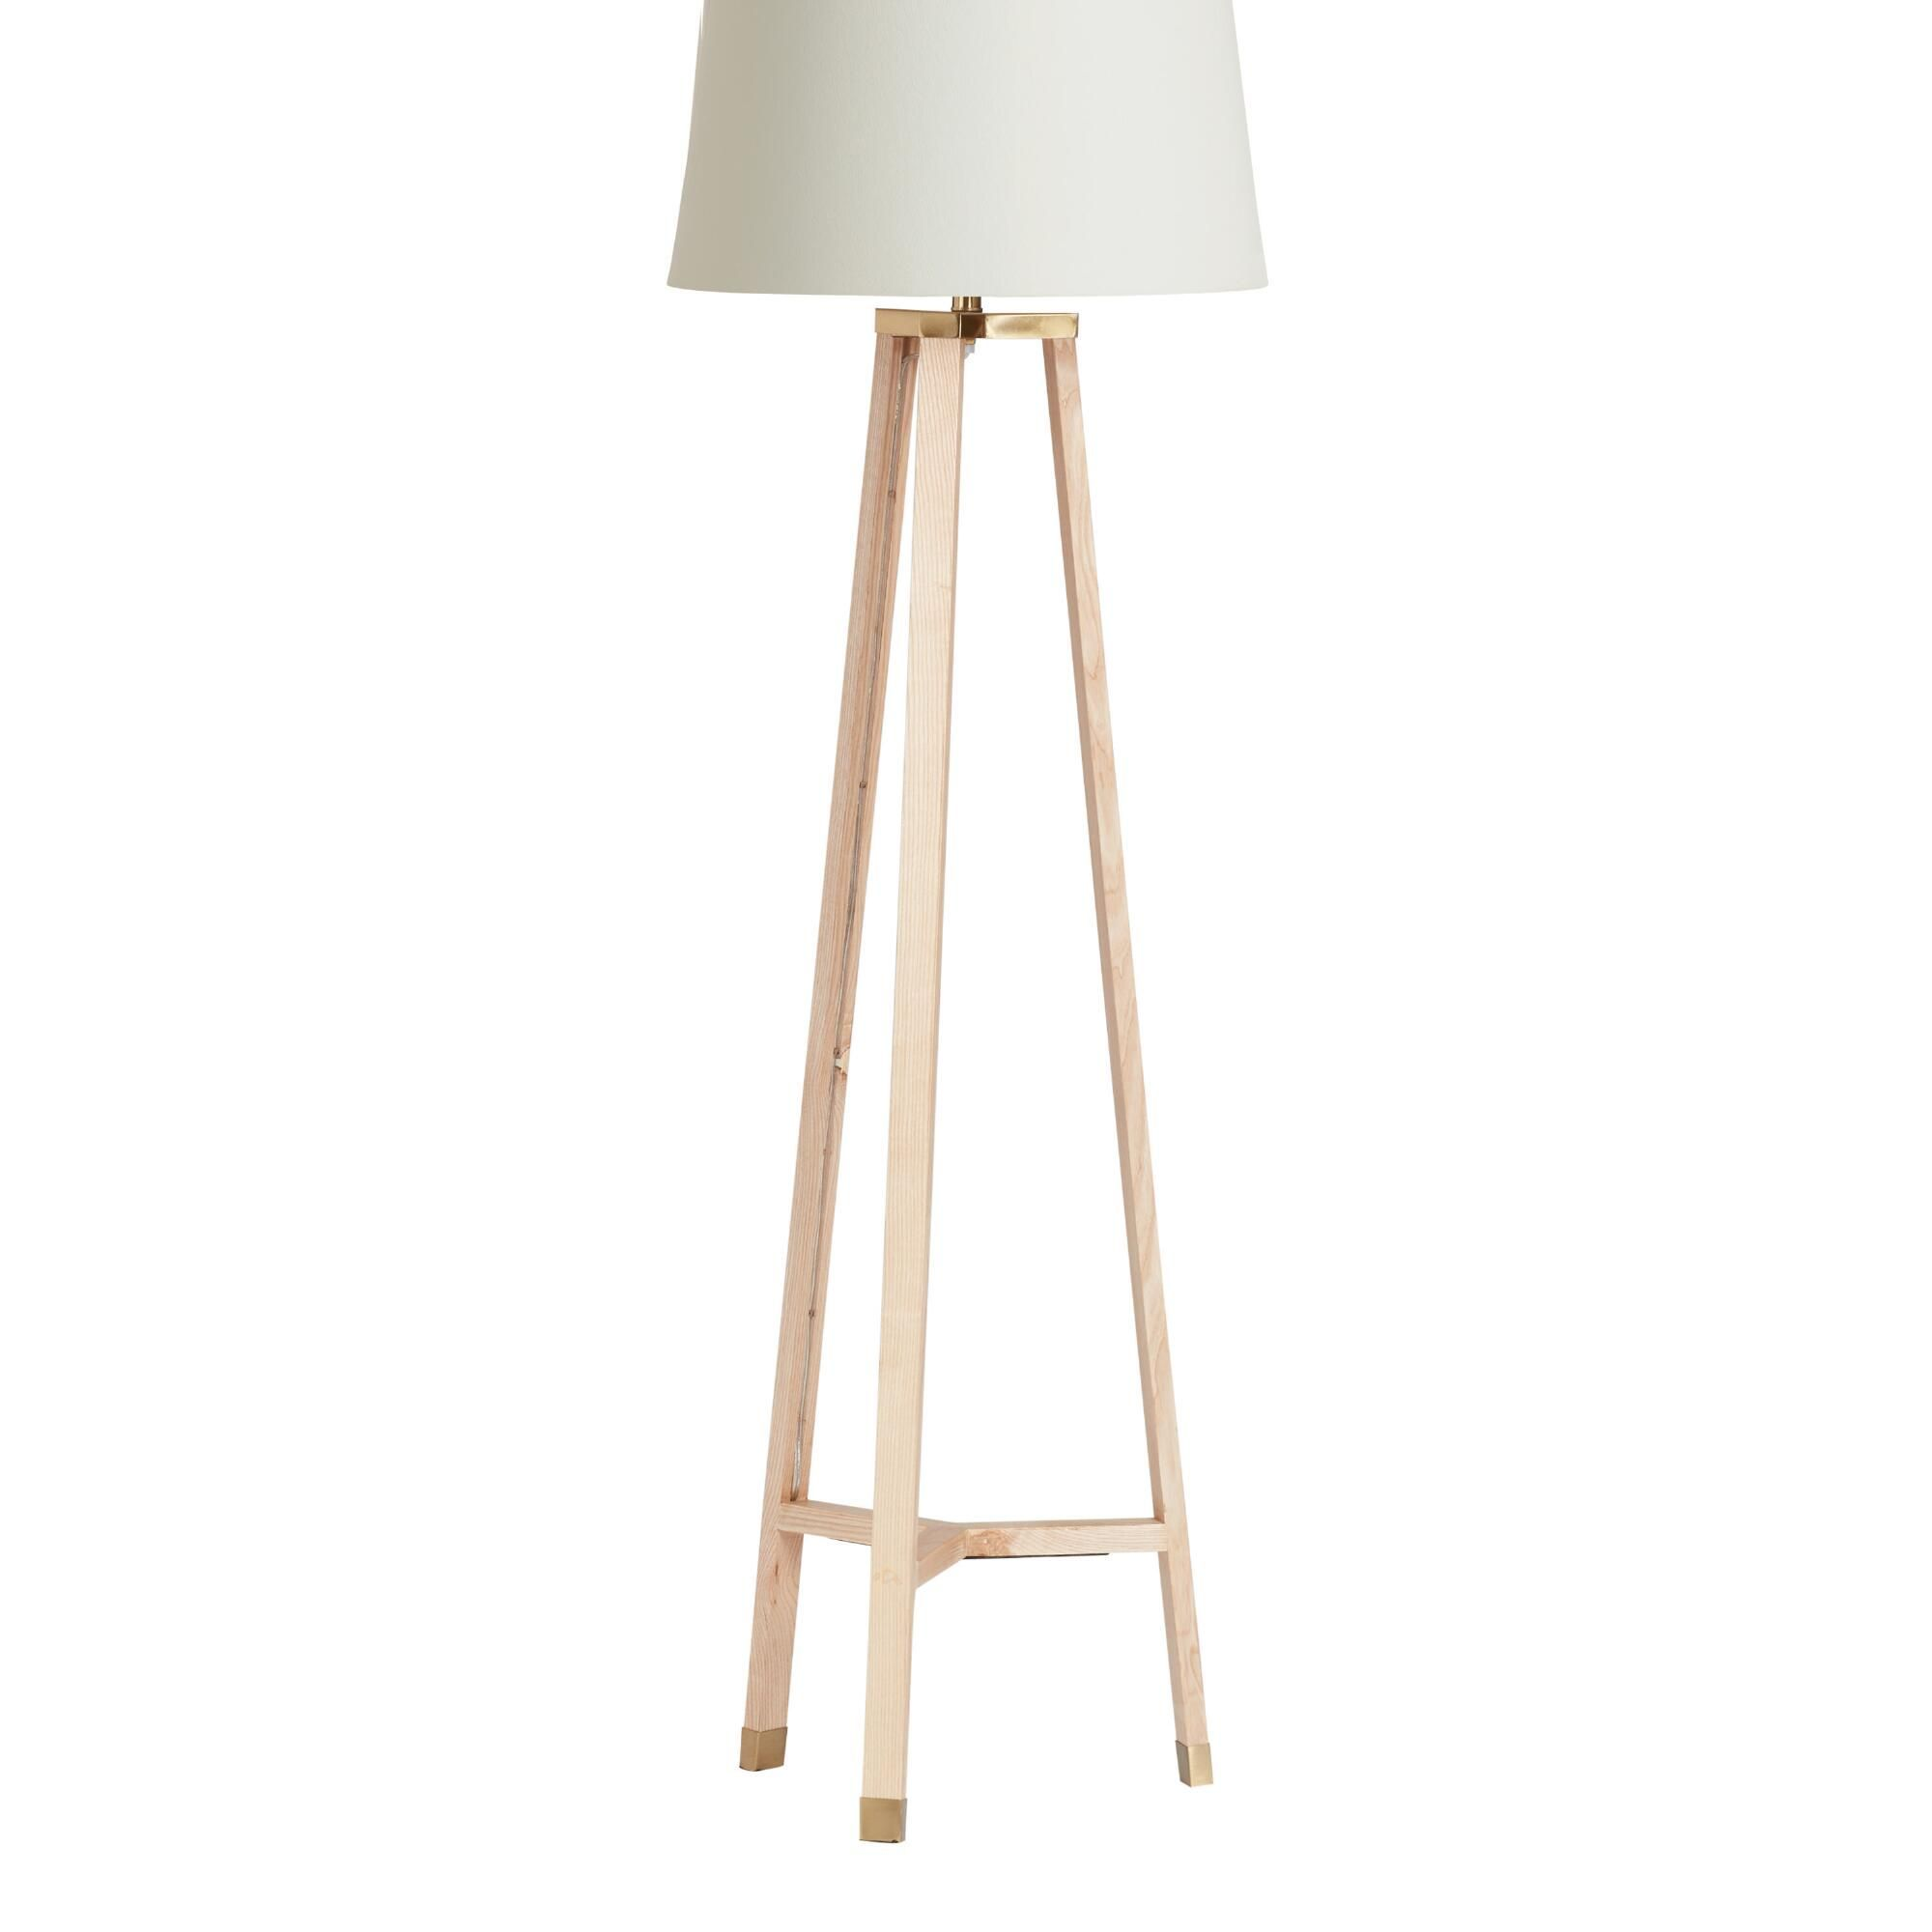 Juno Floor Lamp Base Made Of Natural Wood Brown From The World Market Architectural Wooden Diy Tapered X In 2020 Floor Lamp Base Unique Floor Lamps Wood Floor Lamp